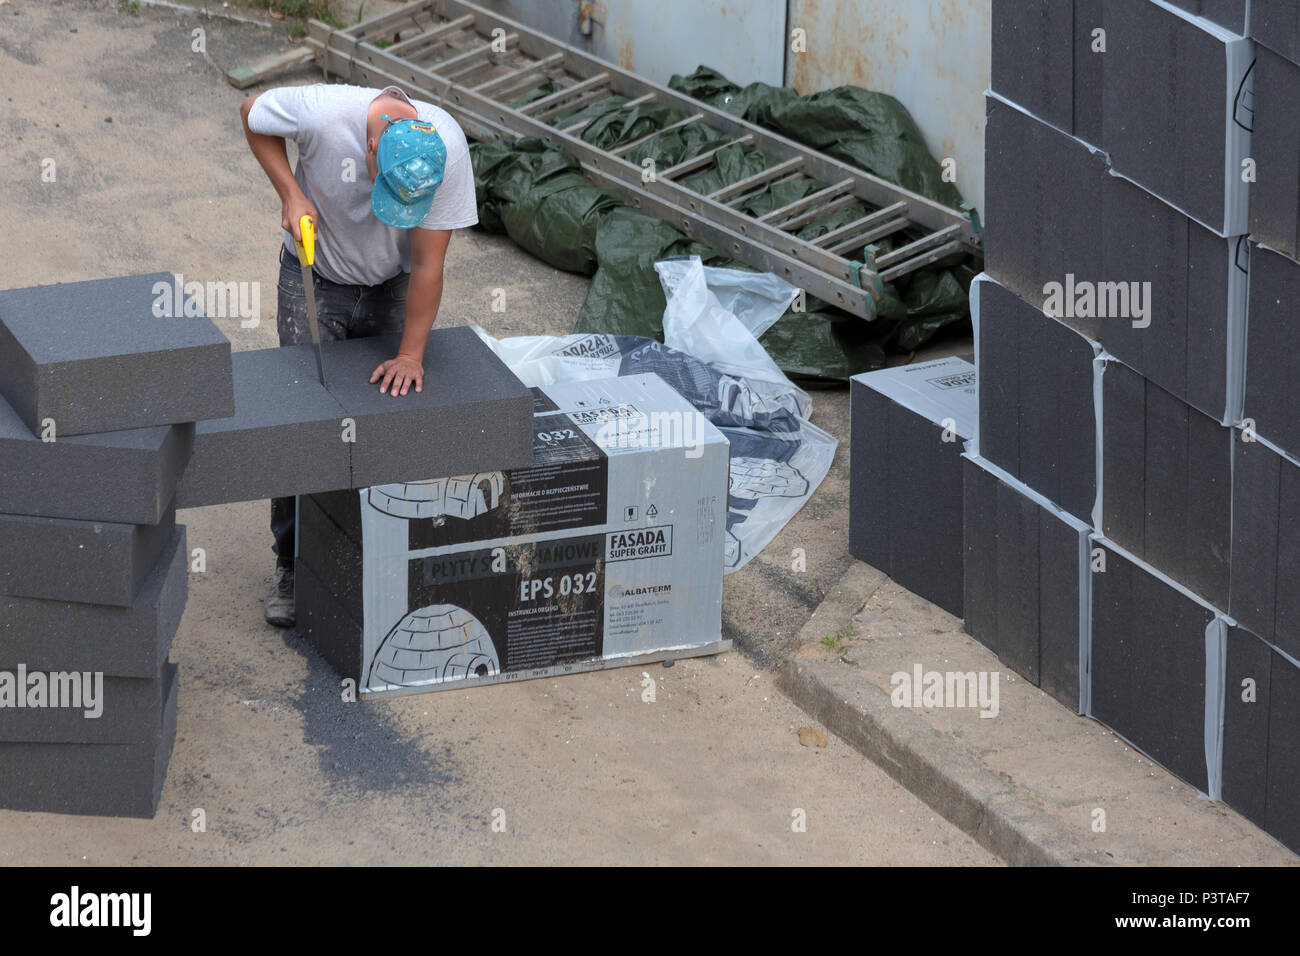 Poland - construction worker is cutting styrofoam for a thermal damaging measure on an old building - Stock Image